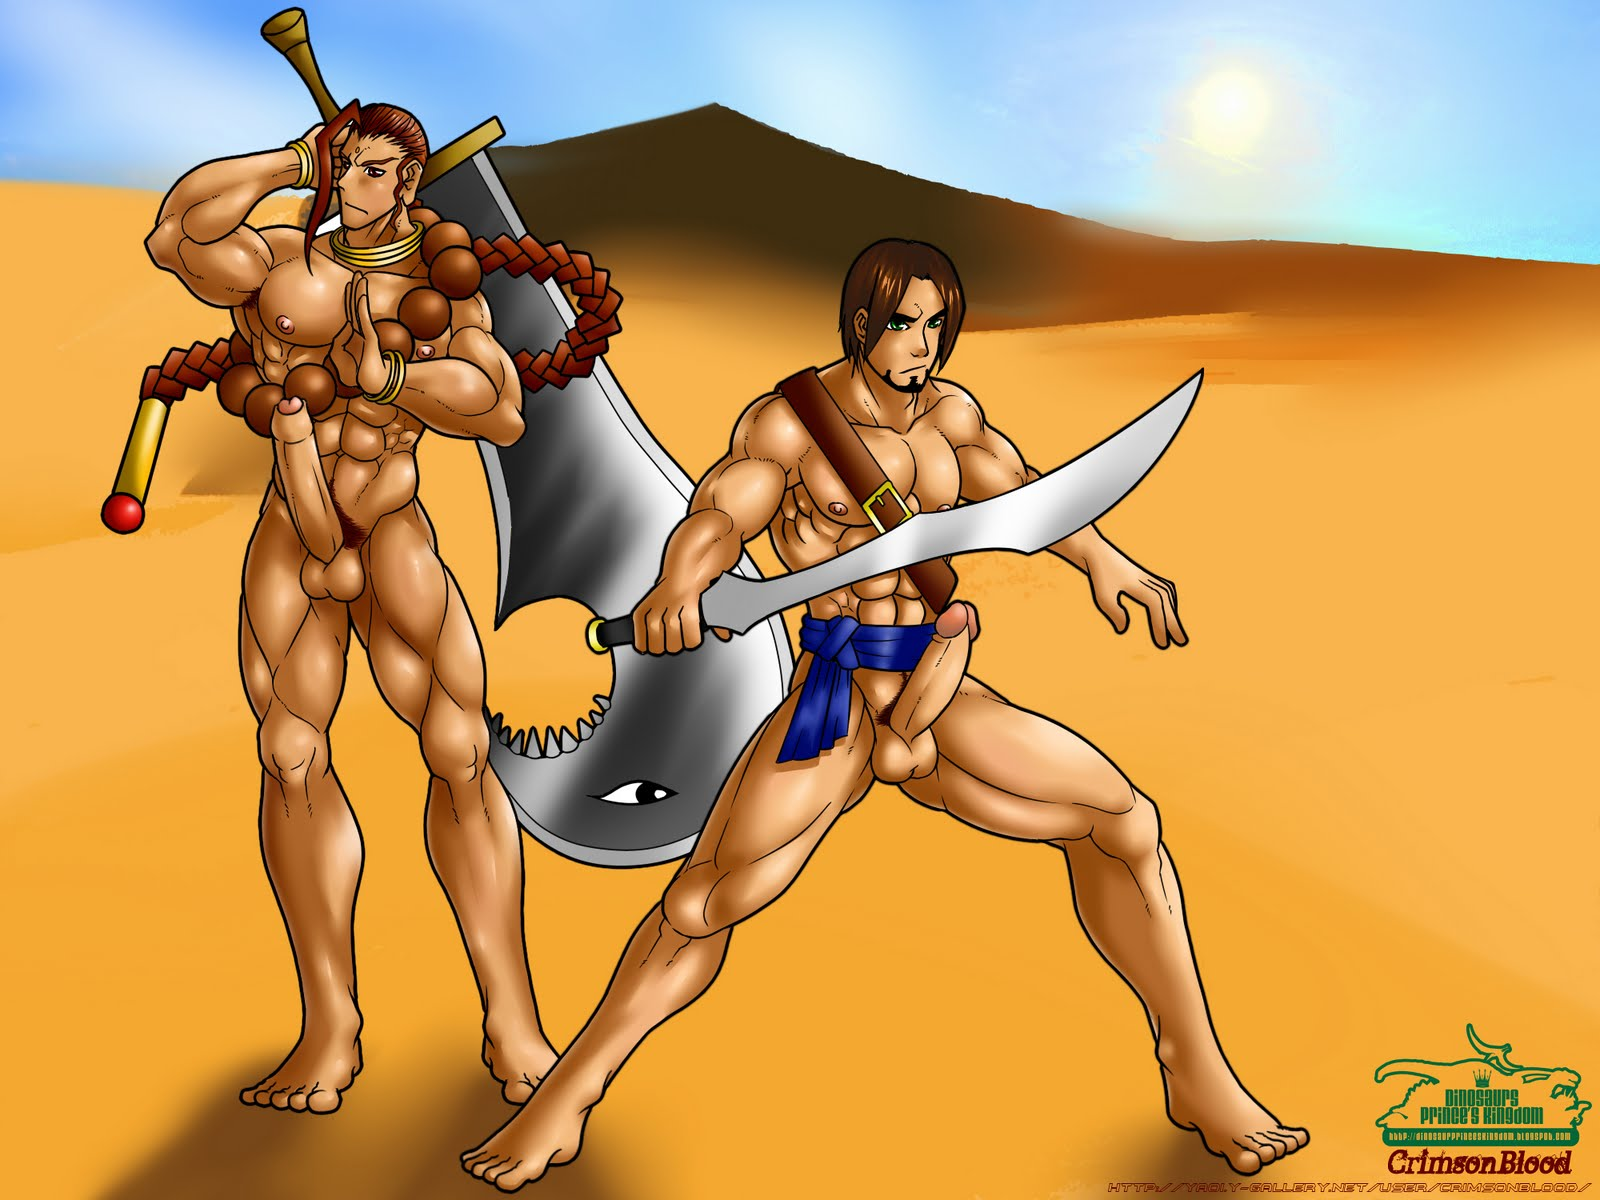 Princes of persia sexporn hentai girls